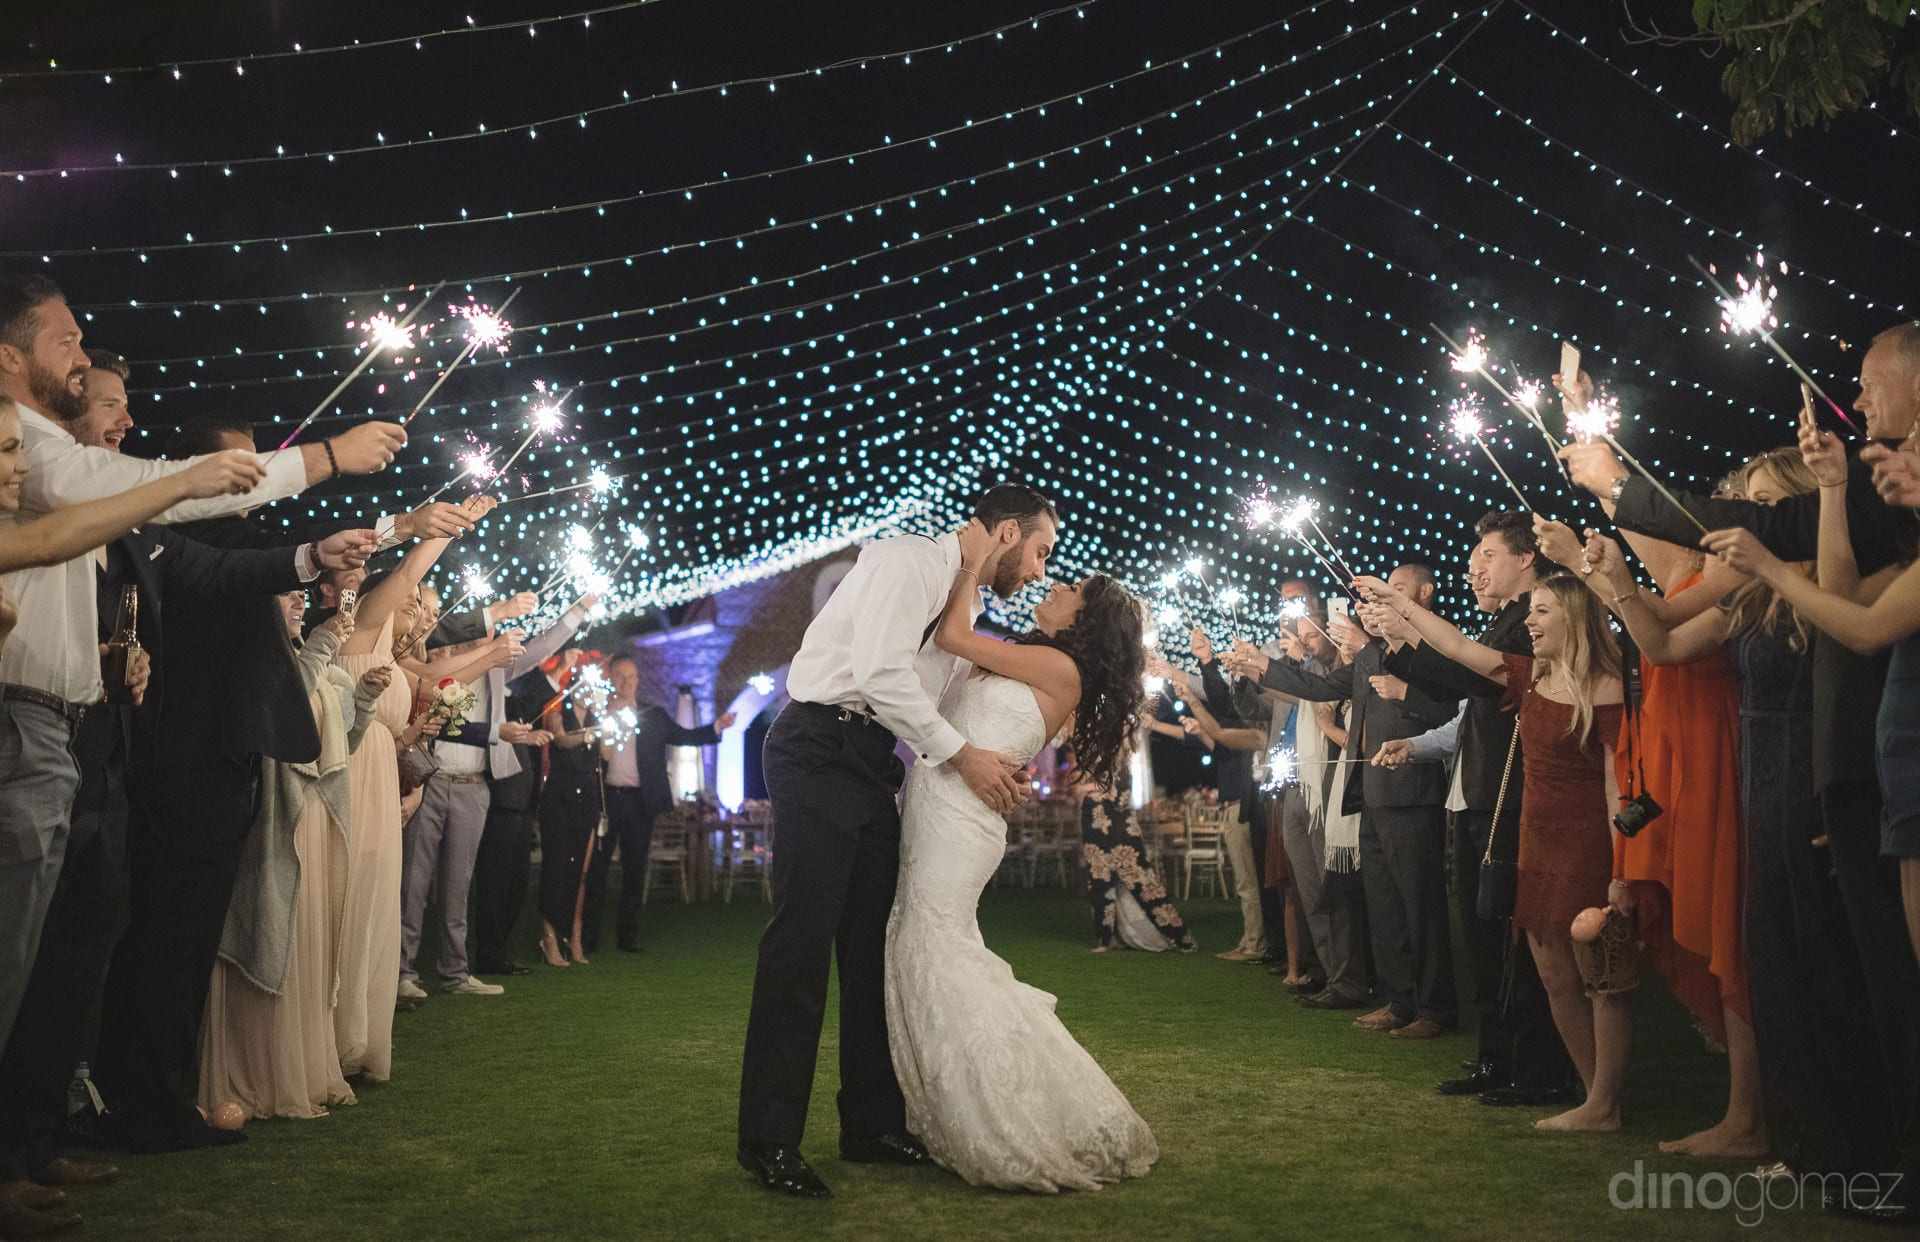 Cabo Photography Bride & Groom kissing under sparklers tunnel - Important Moments